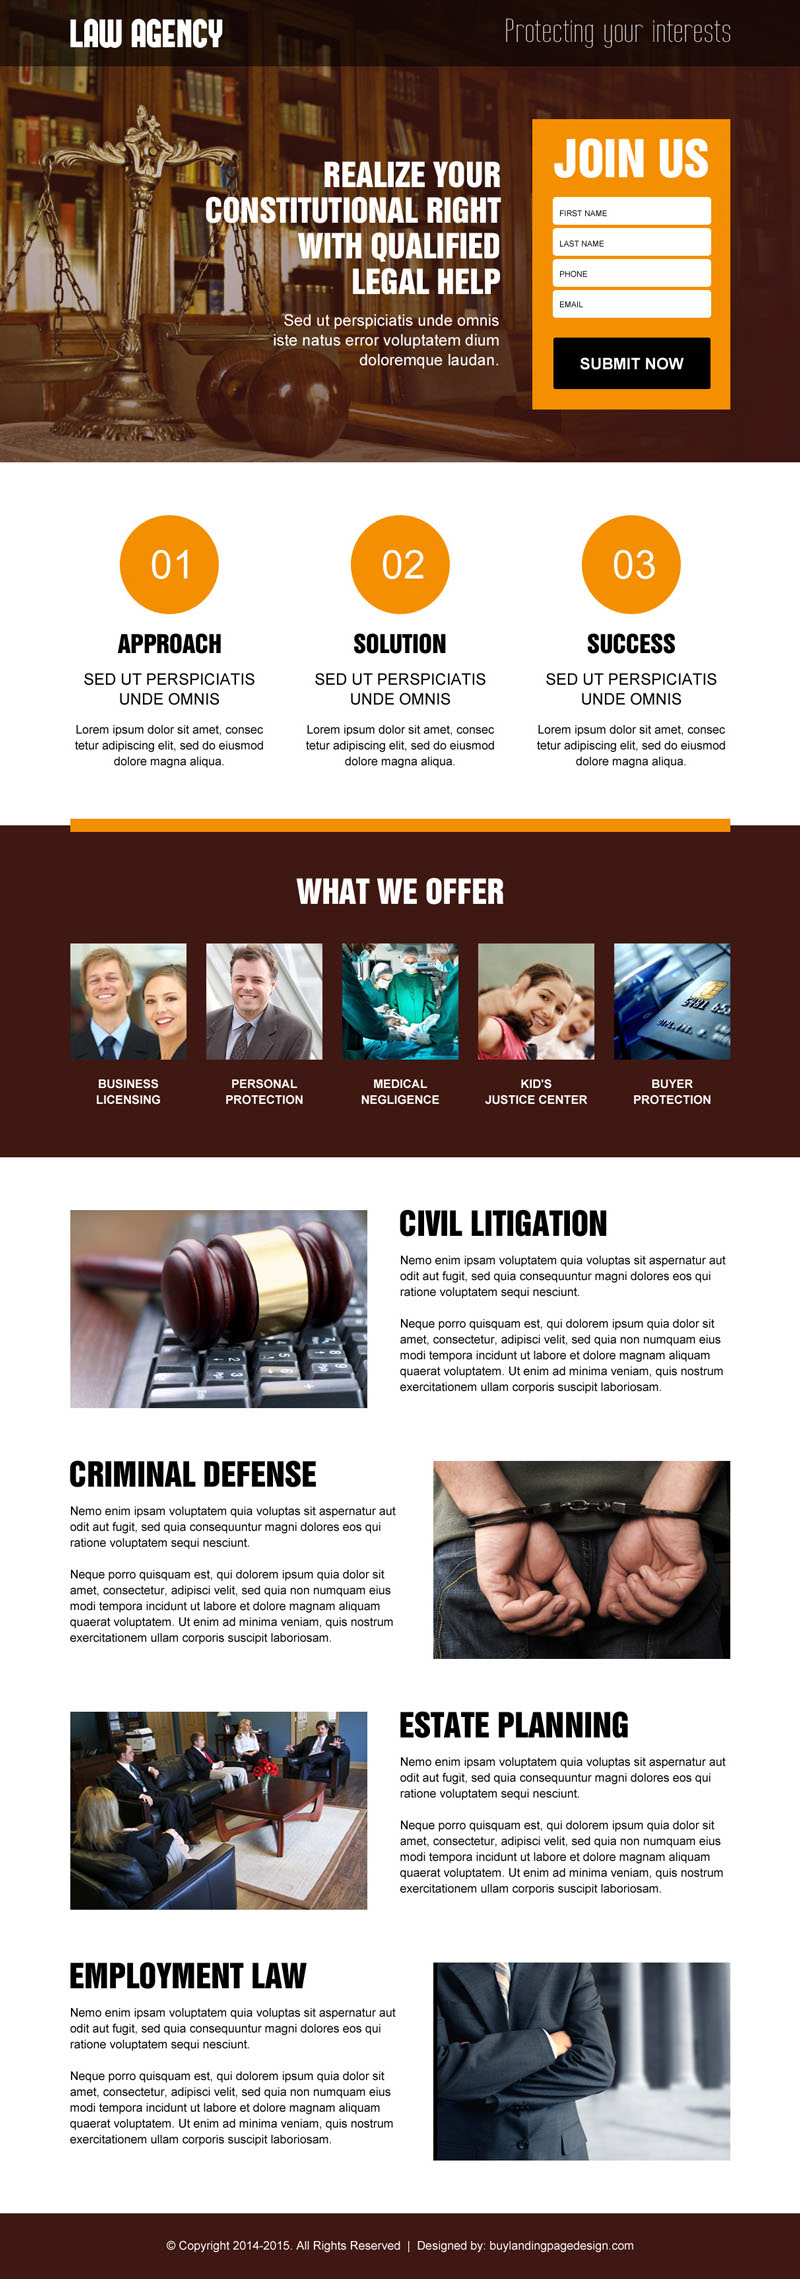 best-law-agency-for-legal-help-service-lead-capture-converting-landing-page-design-003